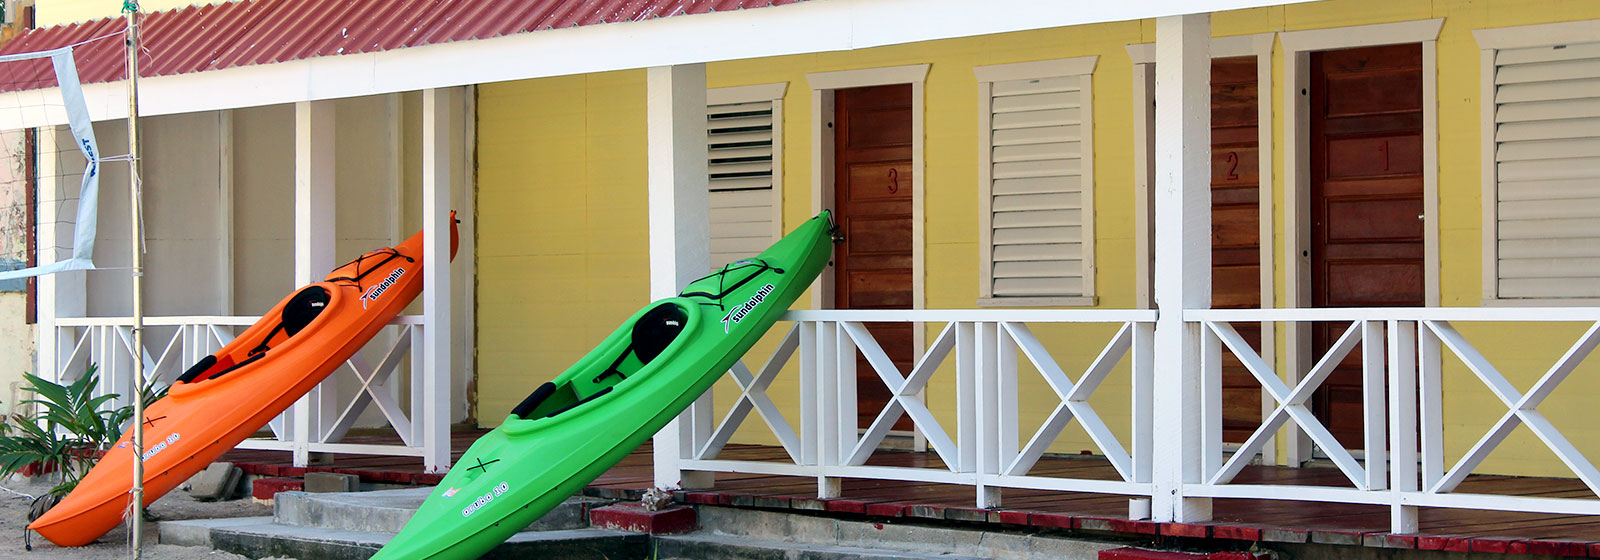 Tobacco Caye Kayaking